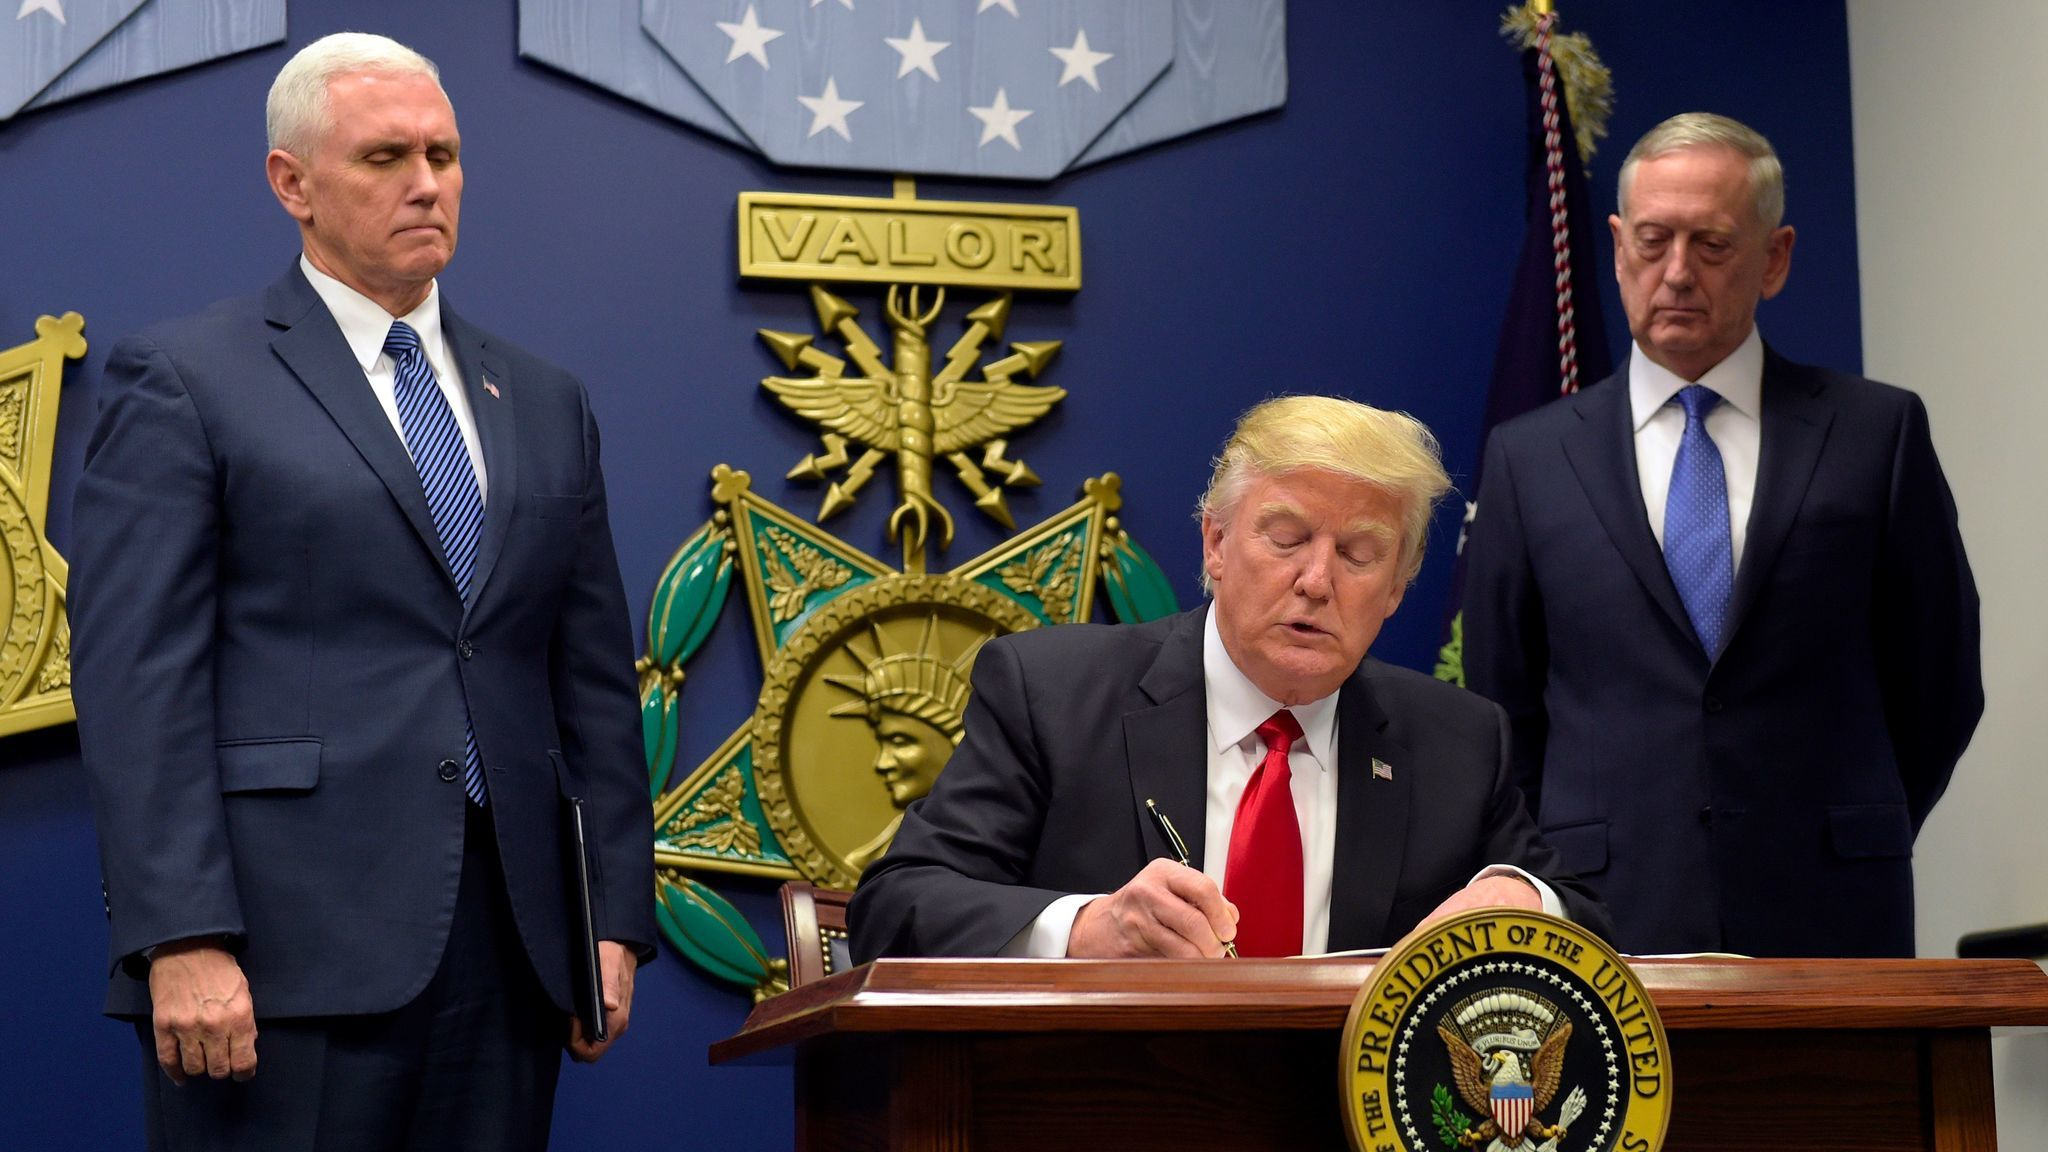 President Trump signs the original travel ban executive order on Jan. 27, 2017.